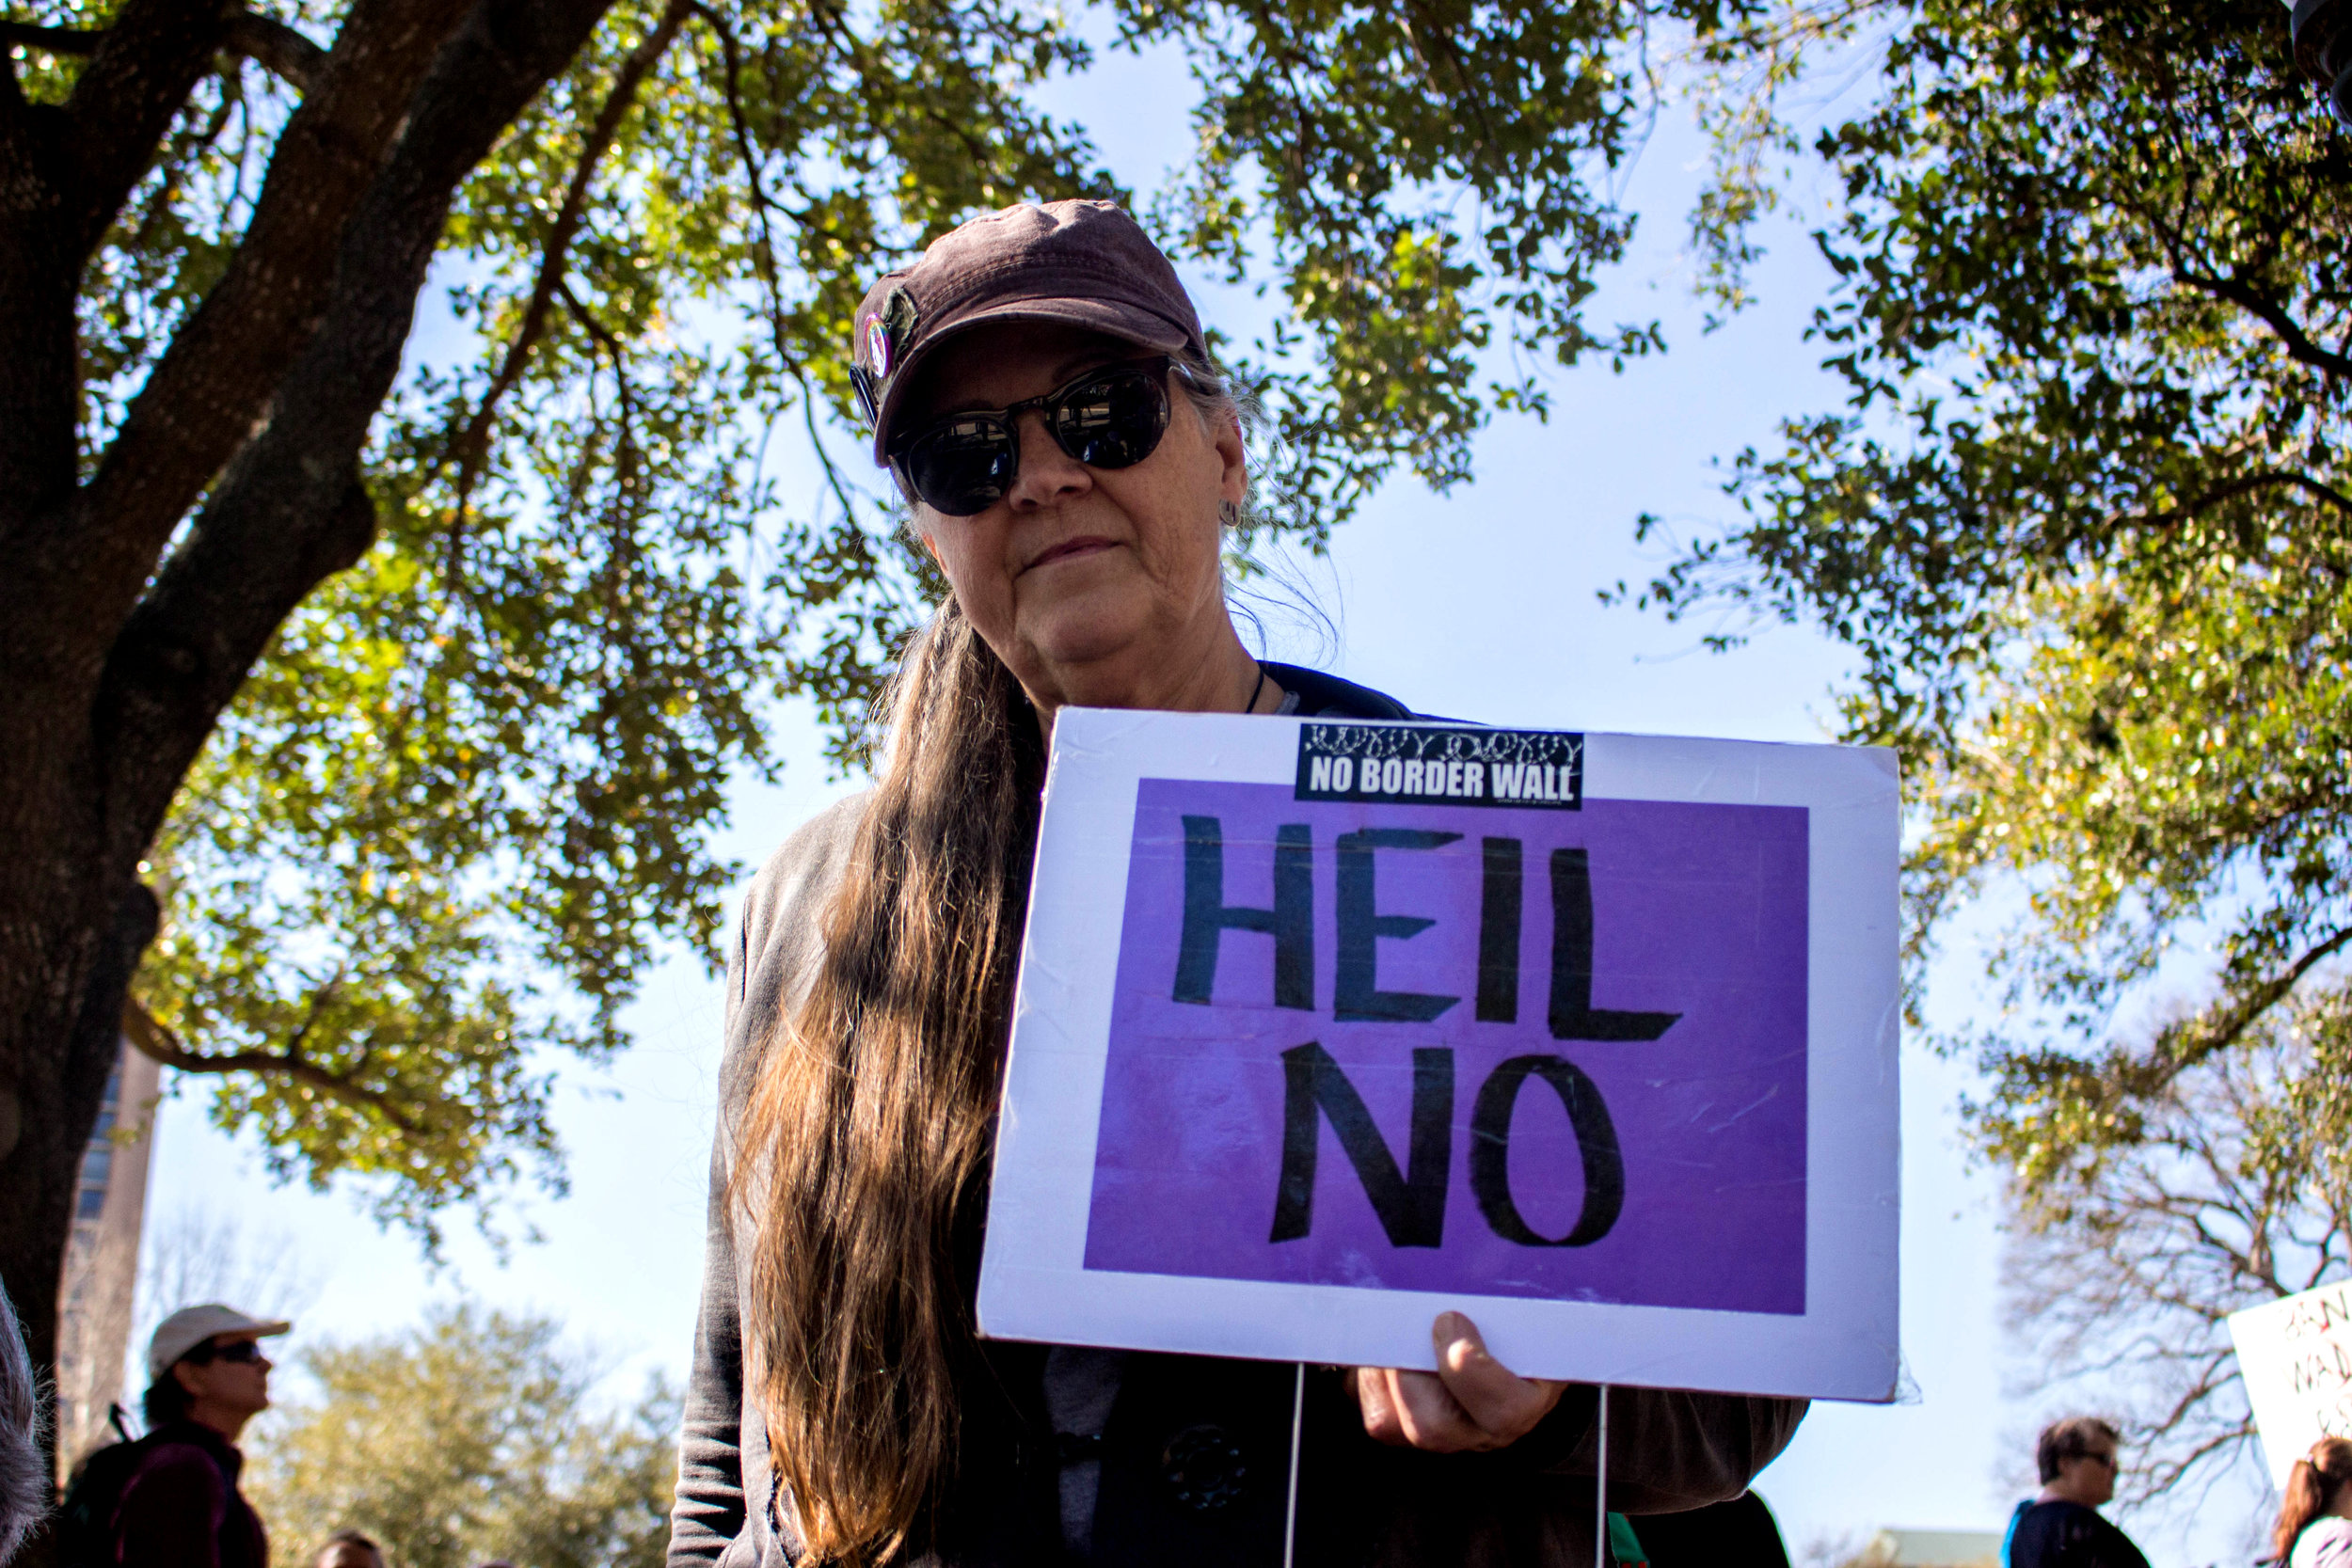 """A woman at the rally holds a sign that says, """"Heil no"""" at the """"No ban, no wall"""" rally on Saturday."""